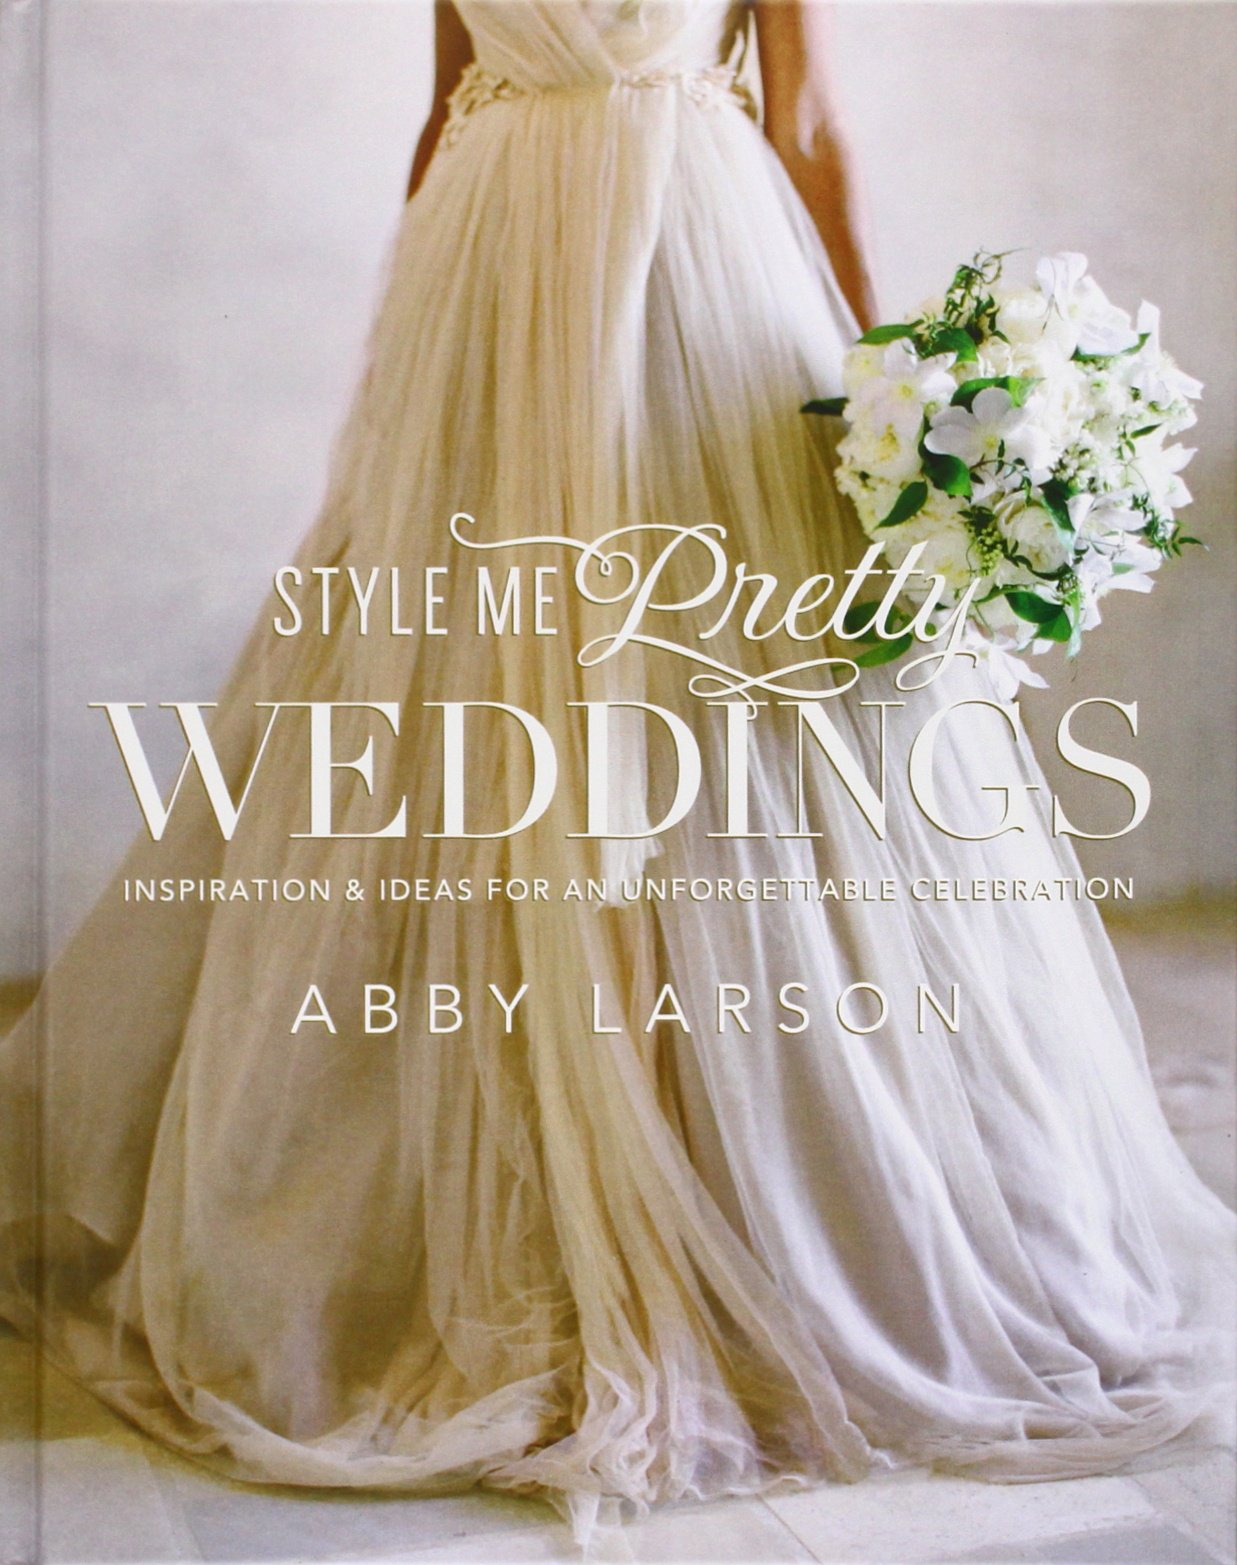 wedding photo book Style Me Pretty Weddings Inspiration and Ideas for an Unforgettable Celebration Abby Larson Amazon com Books